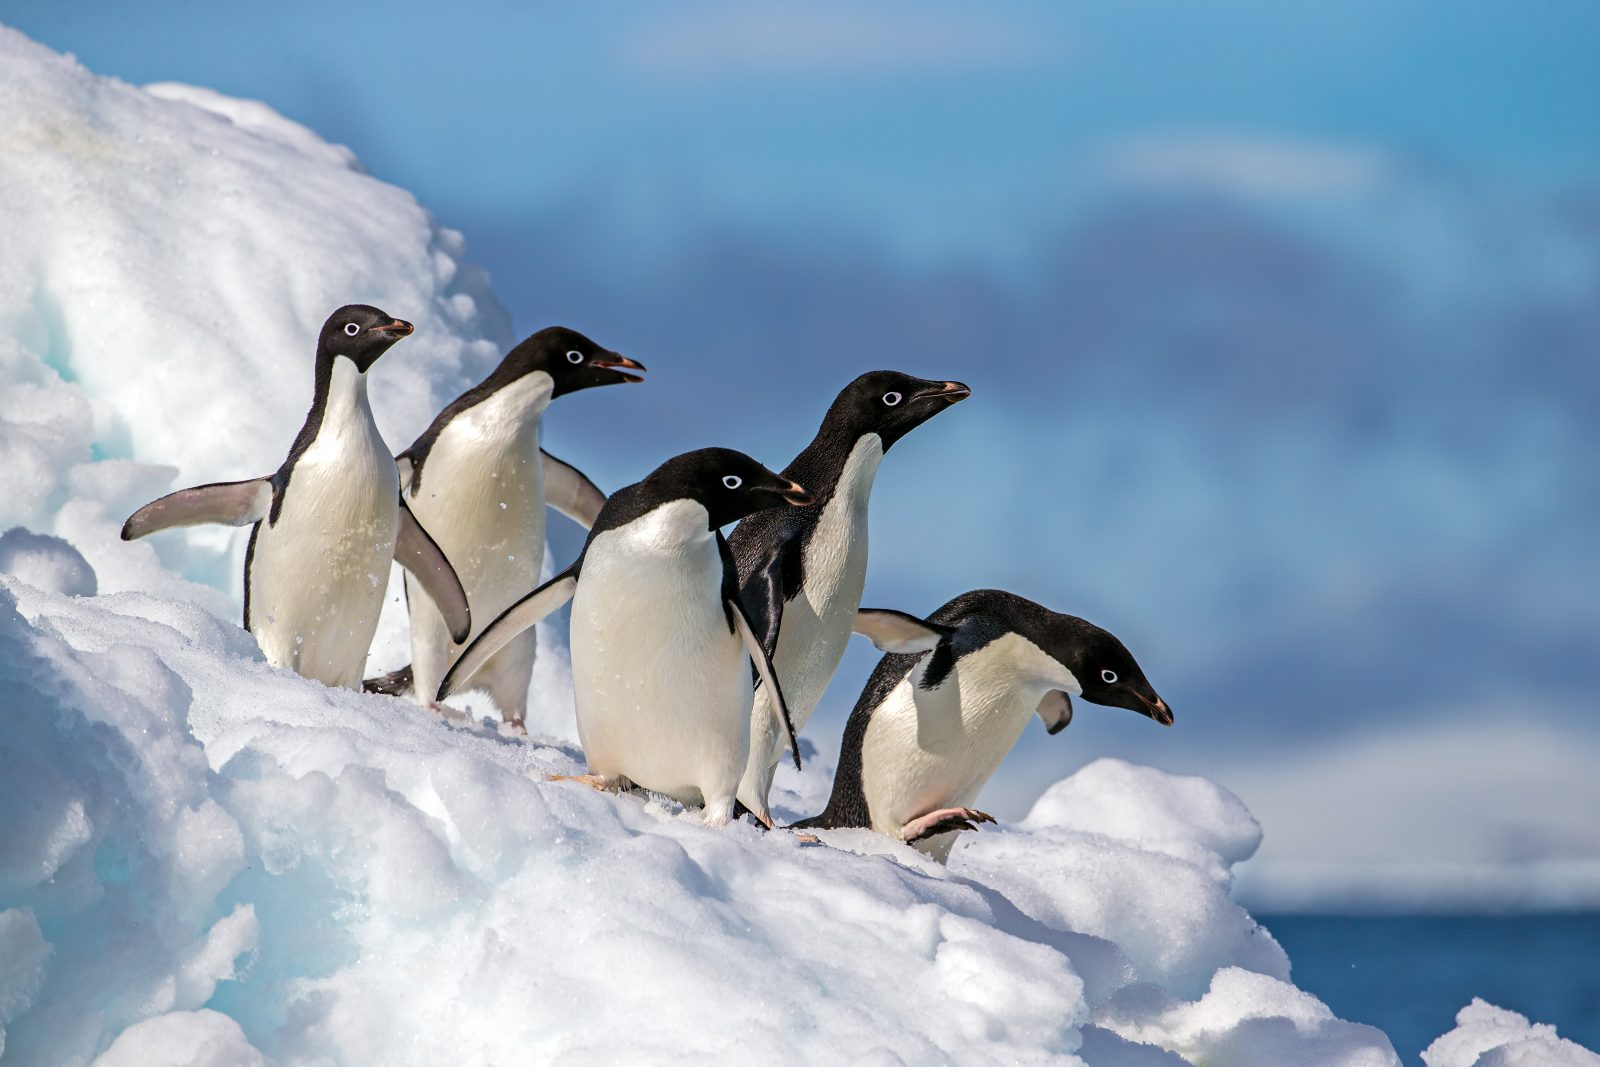 Adelie penguins on an iceberg in Antarctica